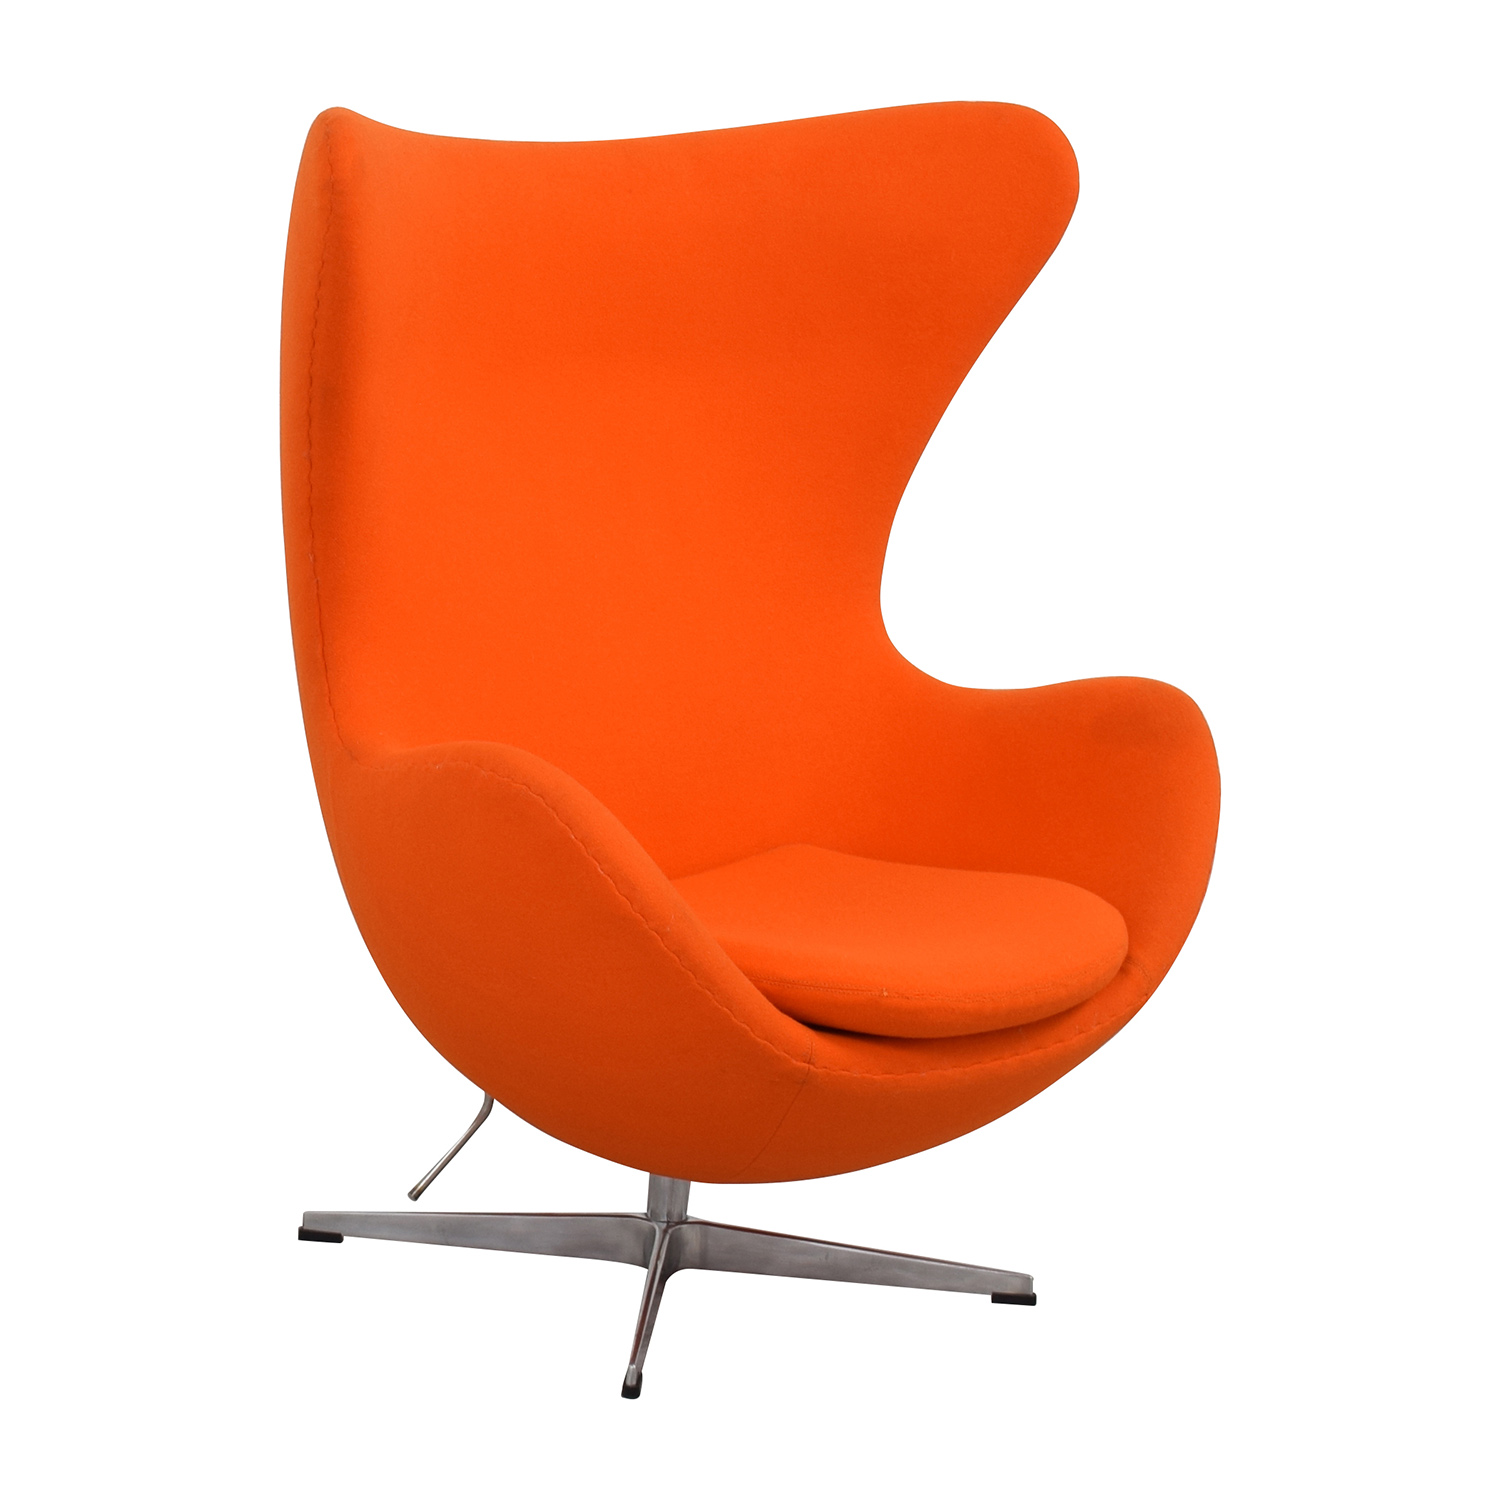 Used Egg Chair 66 Off Inmod Inmod Jacobsen Orange Egg Chair Chairs